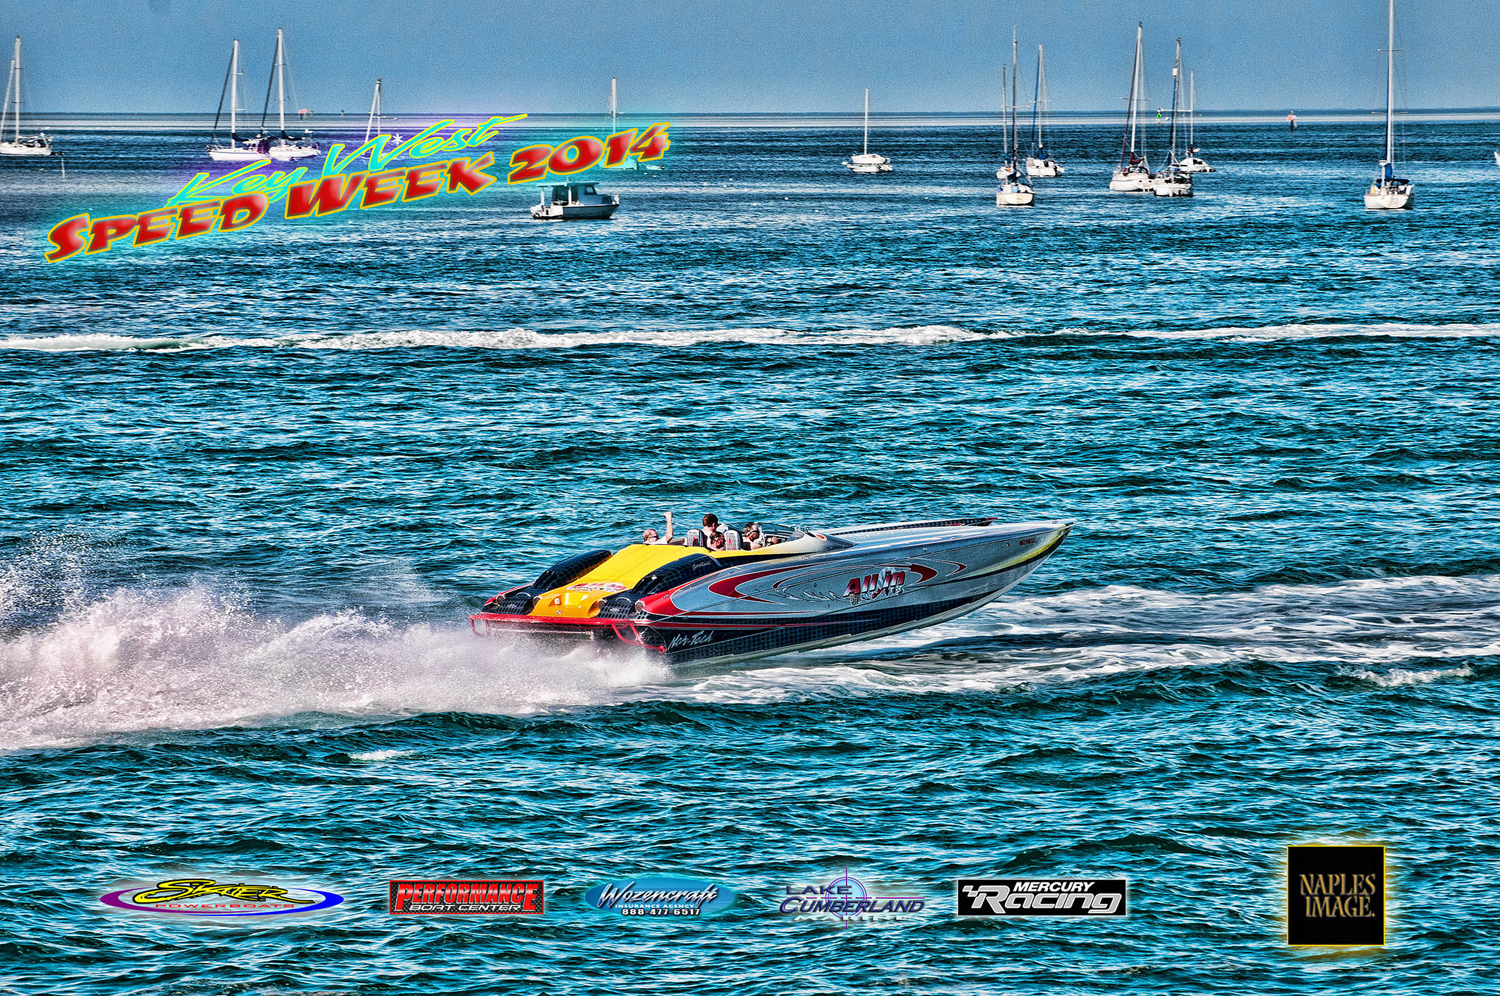 Nor-Tech has been the Key West Poker Run's longest-running sponsor. (Photo by Jay Nichols.)